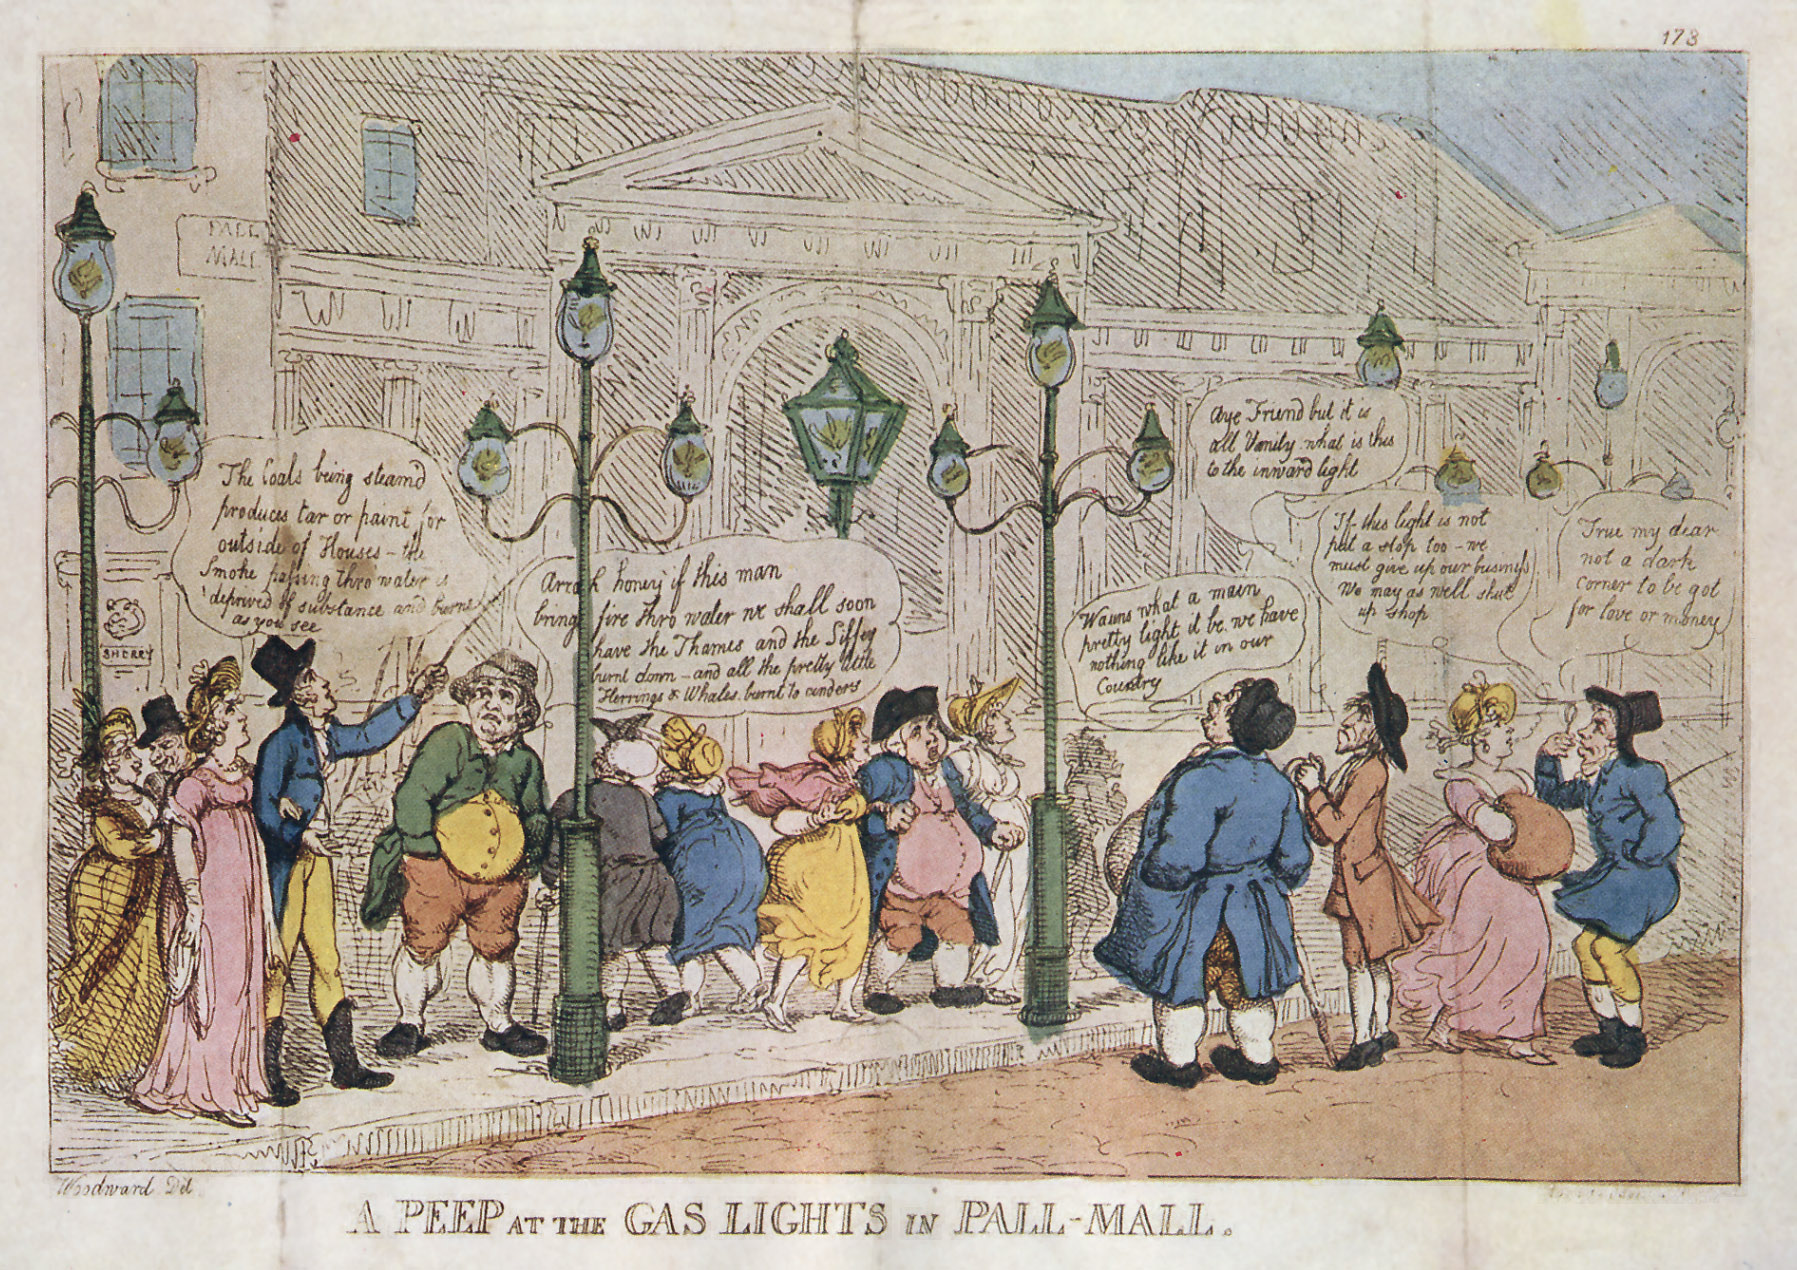 FileA Peep at the Gas Lights in Pall Mall Rowlandson 1809.jpg & File:A Peep at the Gas Lights in Pall Mall Rowlandson 1809.jpg ...